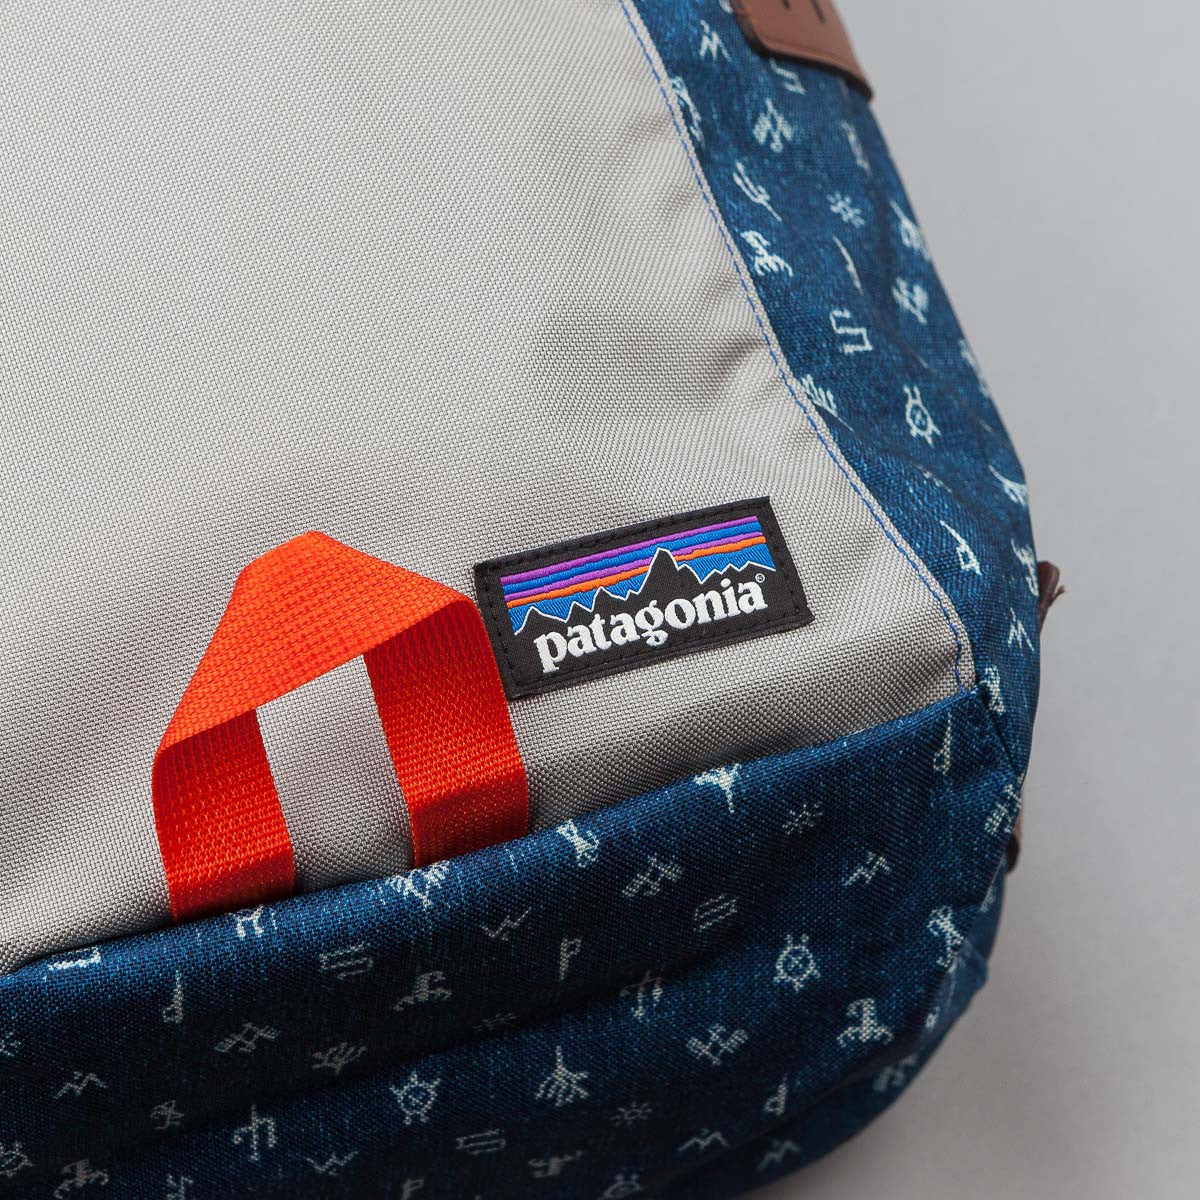 Patagonia Ironwood Backpack - Scorpo: Channel Blue